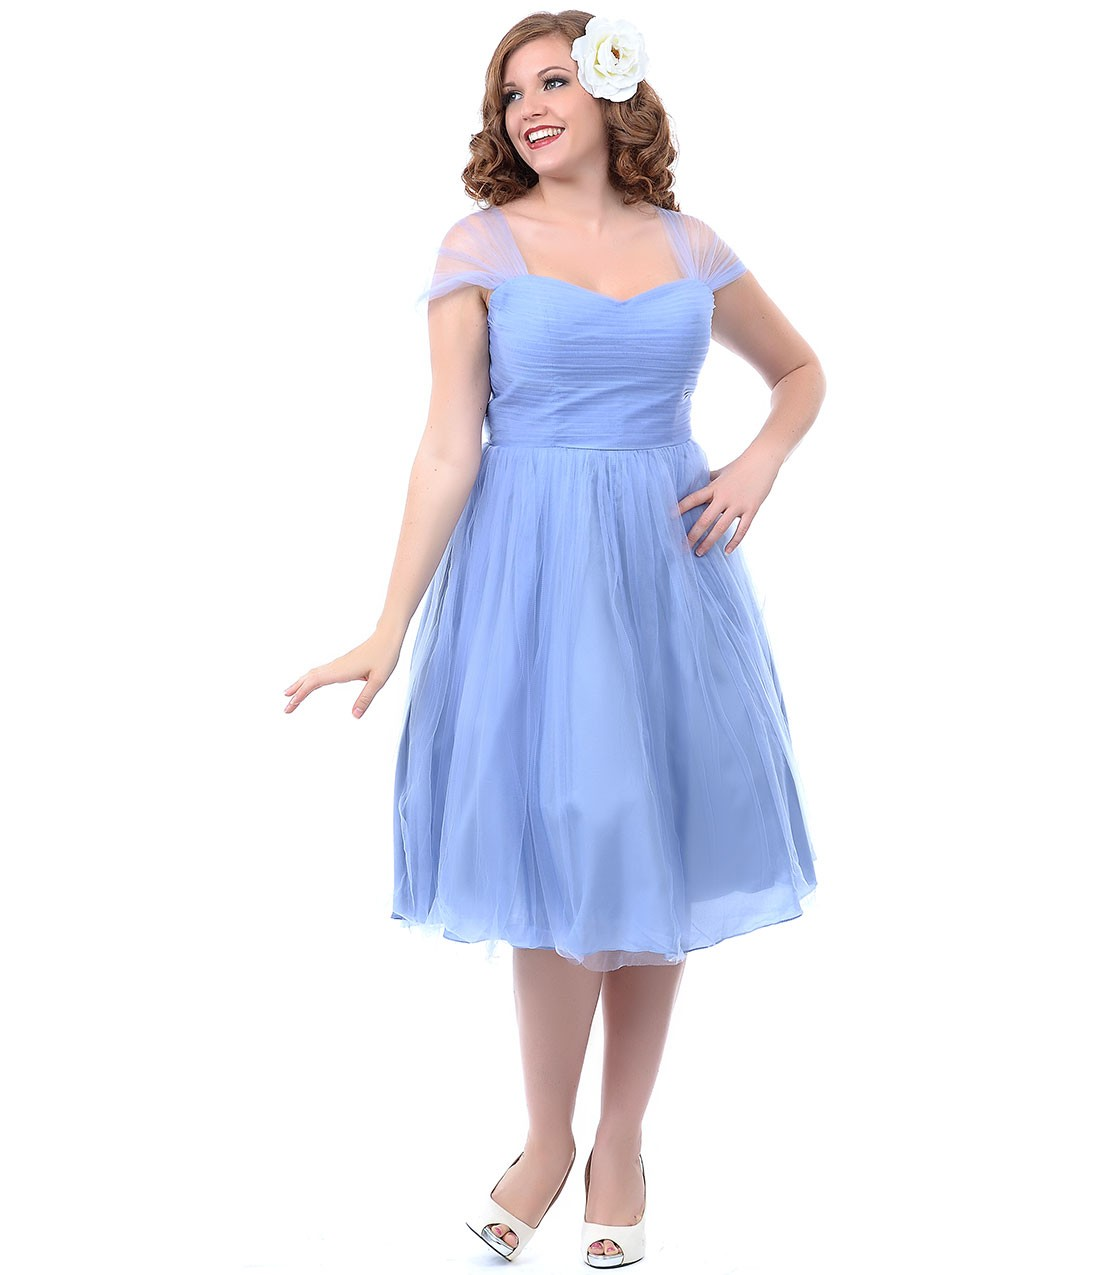 Plus Size Girls Dresses - Nini Dress